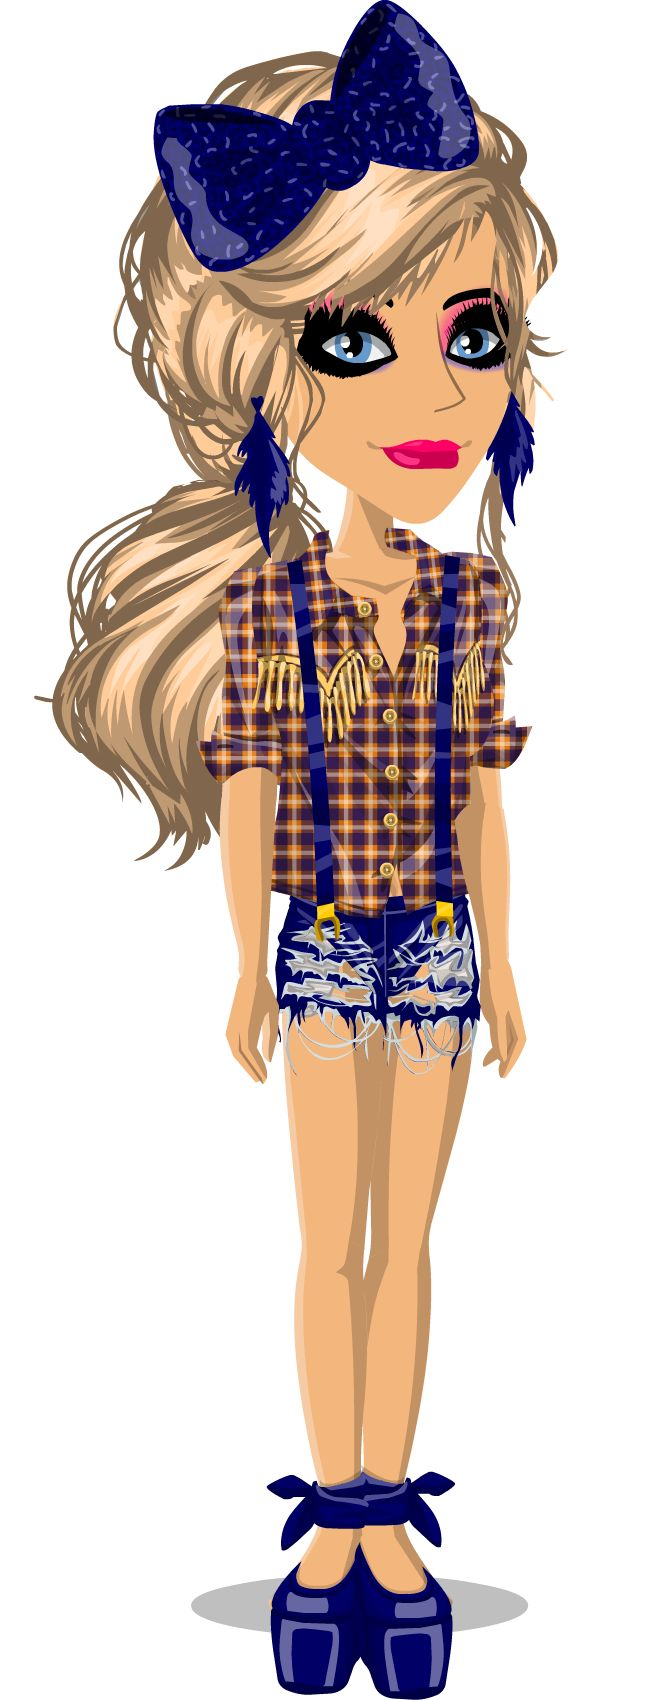 ( not me ) I could see this brig a stylish farmer girl